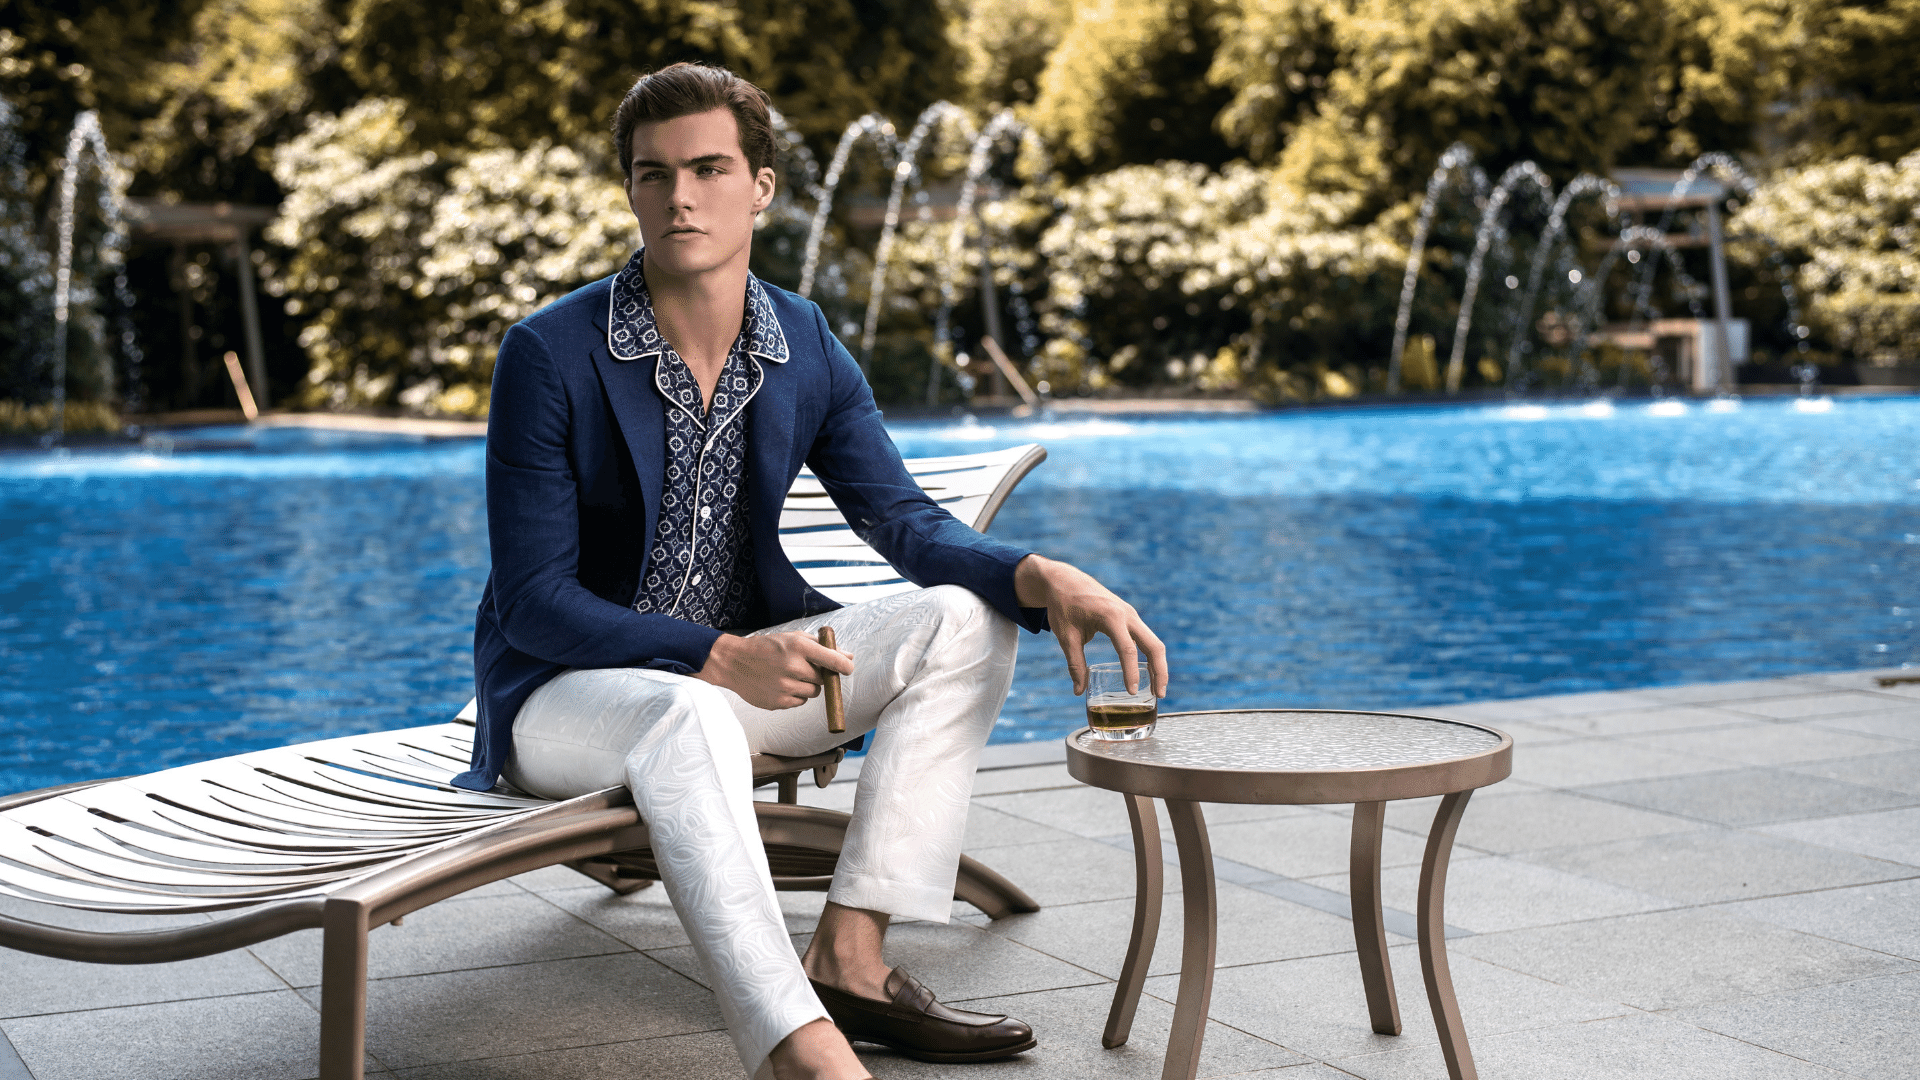 Founded by Matthew Gideon, DEBONEIRE is a luxury menswear label that creates unique timeless suits intertwined with elements of the classic and the contemporary.